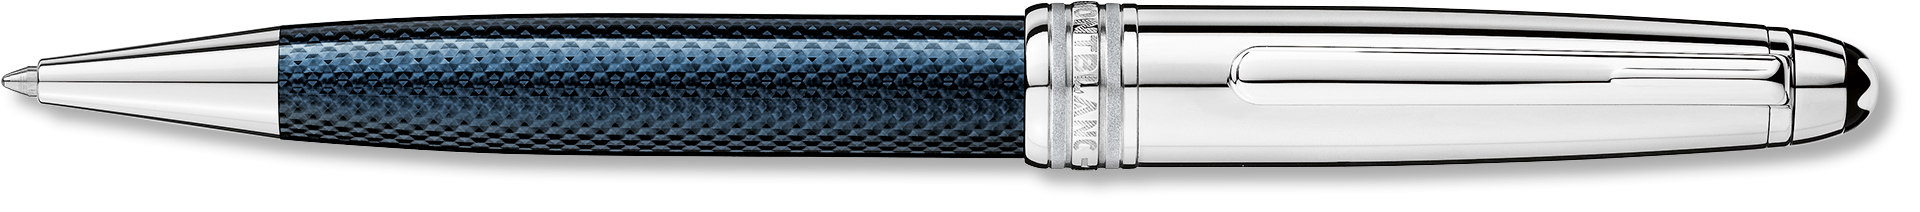 Montblanc Solitare Blue Hour Doue Ballpoint